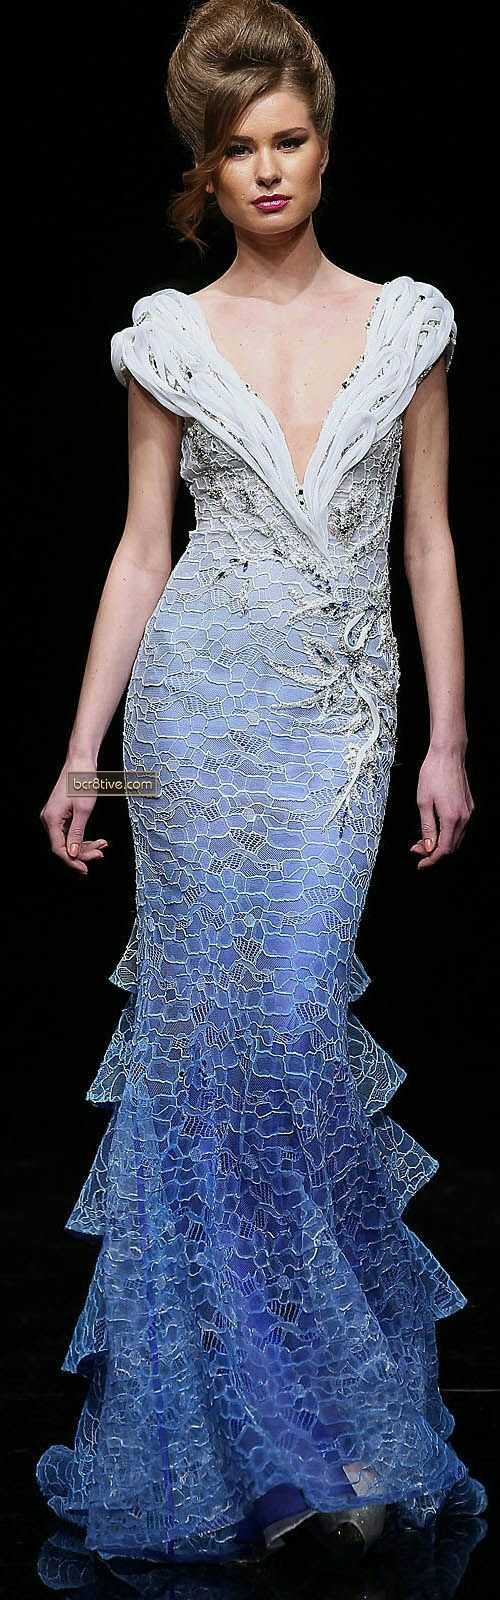 Pin by robbyj bridwell on designer gowns pinterest designer